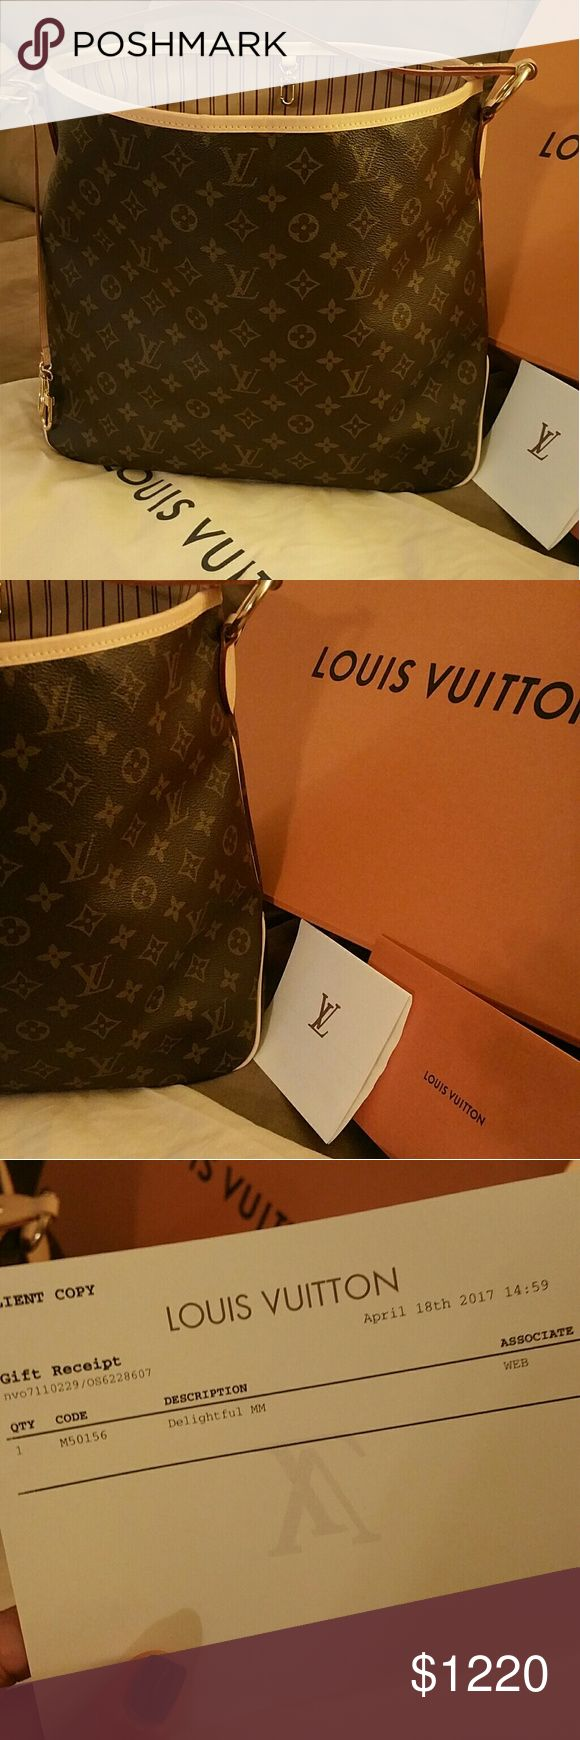 Louis Vuitton monogram Delightful MM Authentic Louis Vuitton Delightful MM | Monogram canvas | EXCELLENT condition, hardly ever carried | Still has that new leather smell 😍 | ☆NO TRADES | NO LOW BALL OFFERS☆ Louis Vuitton Bags Hobos